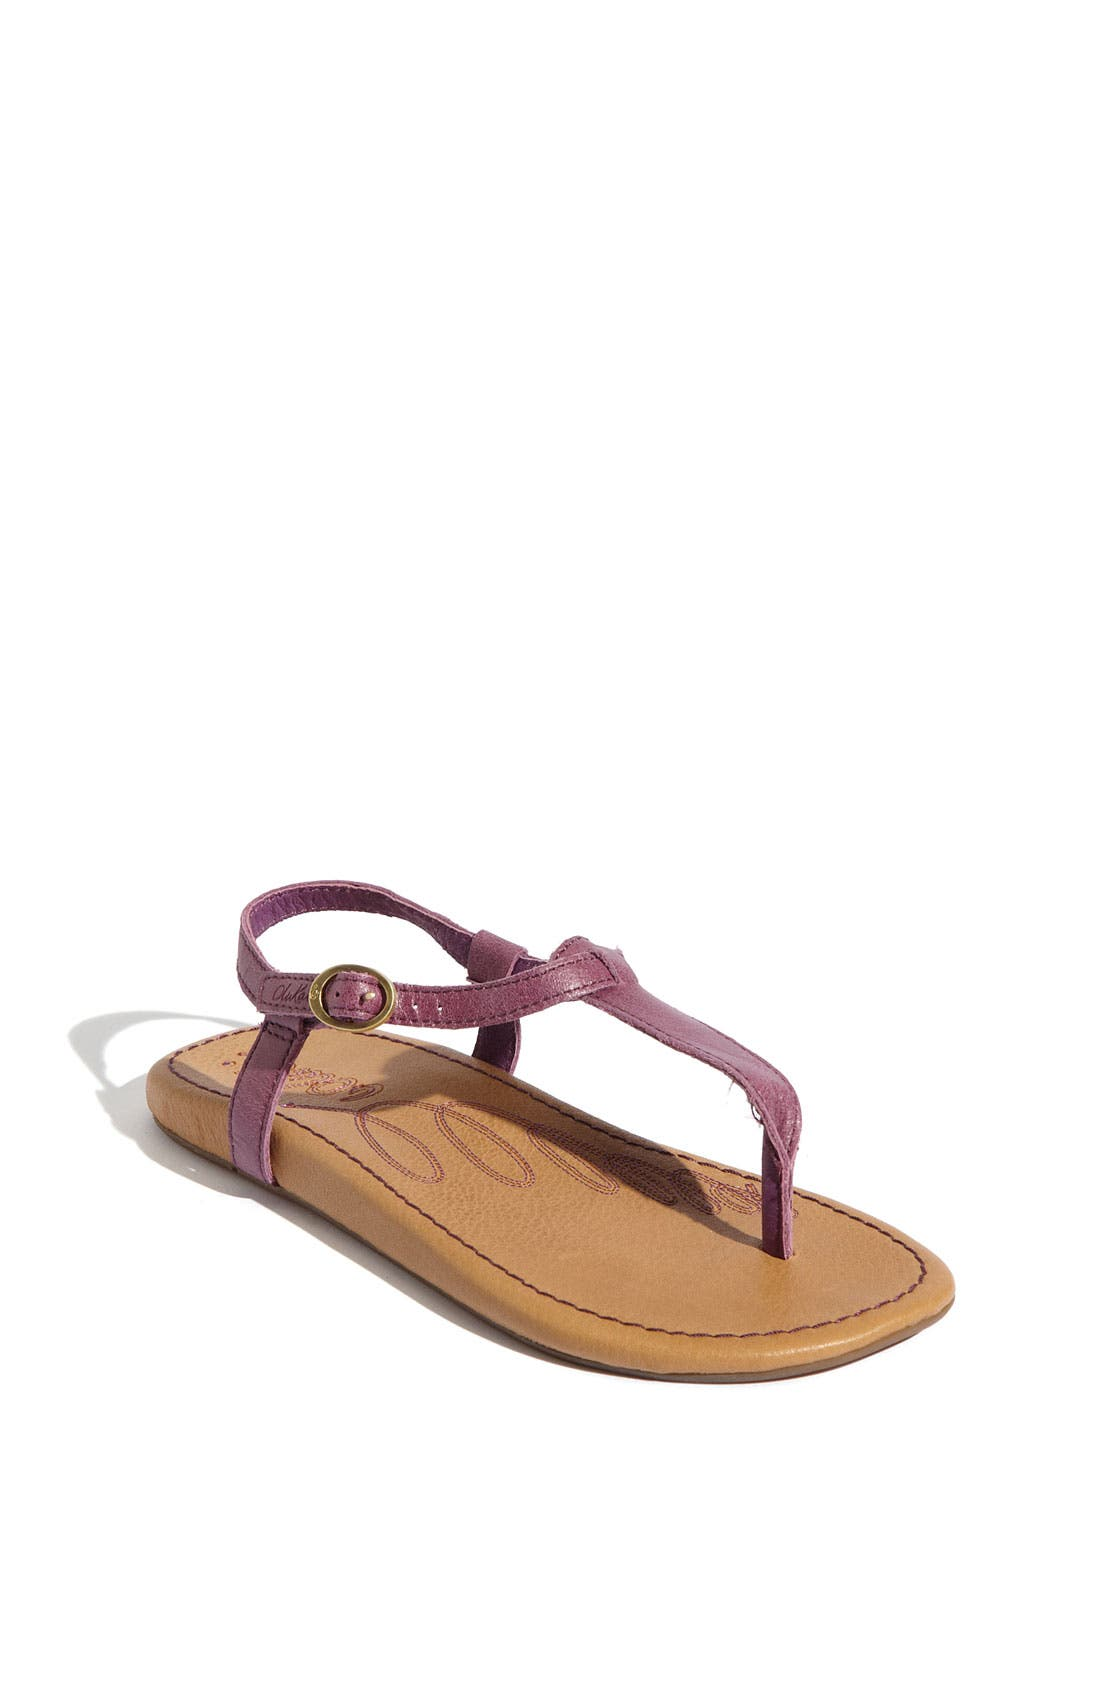 Main Image - OluKai 'Anela' Sandal (Toddler, Little Kid & Big Kid)